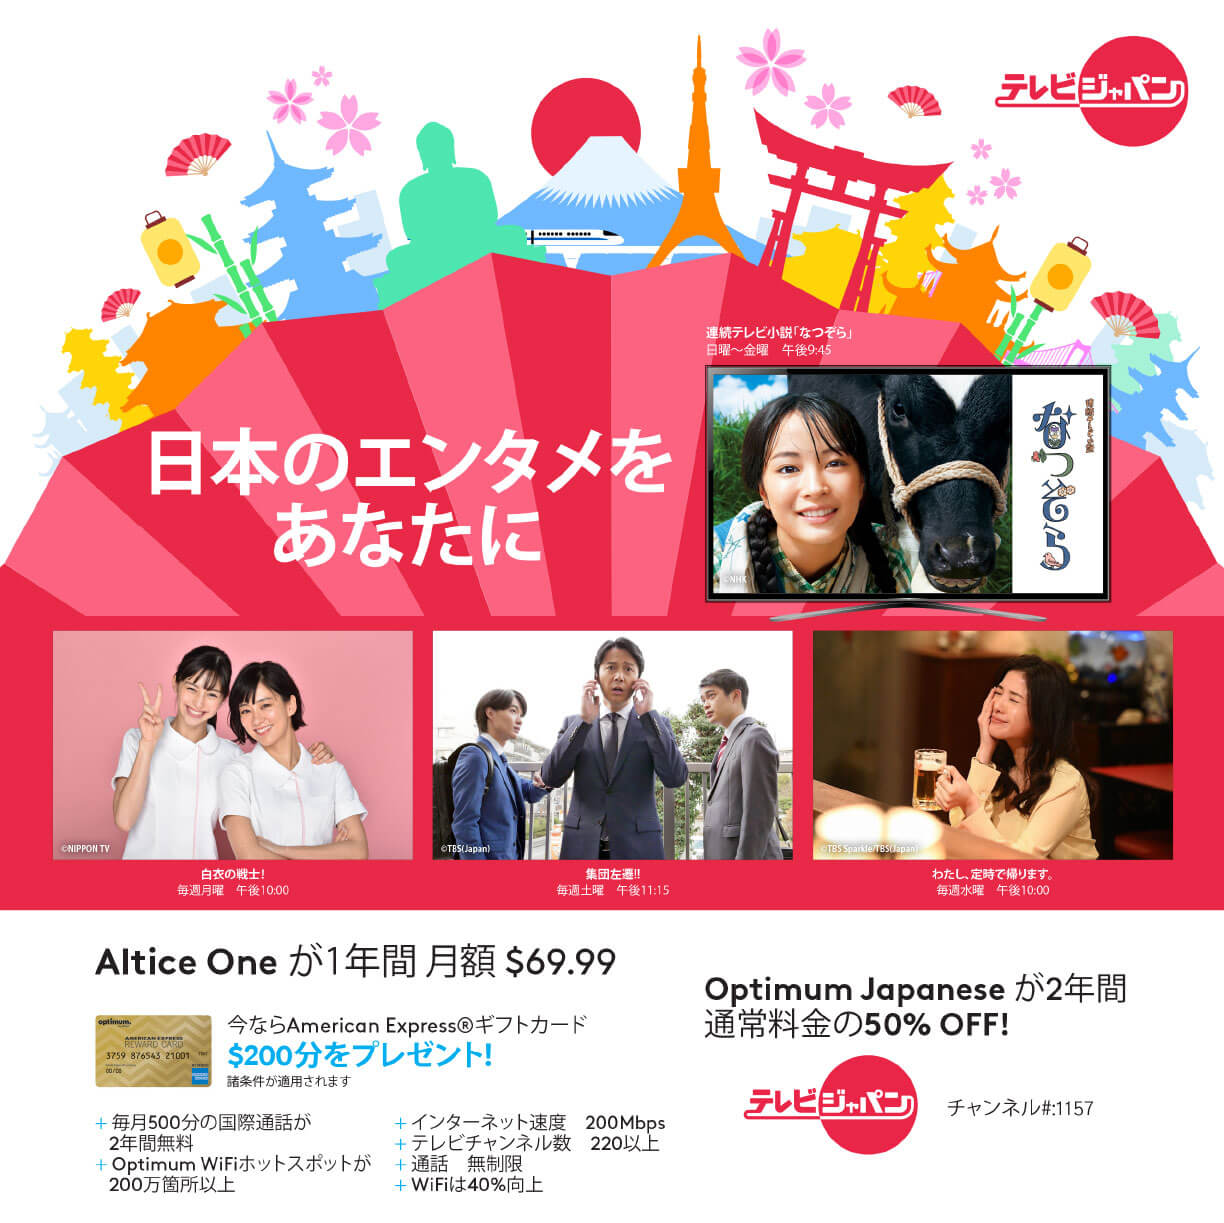 Optimumでテレビジャパンが今だけ50% OFF | Quality Japanese Channel 24/7